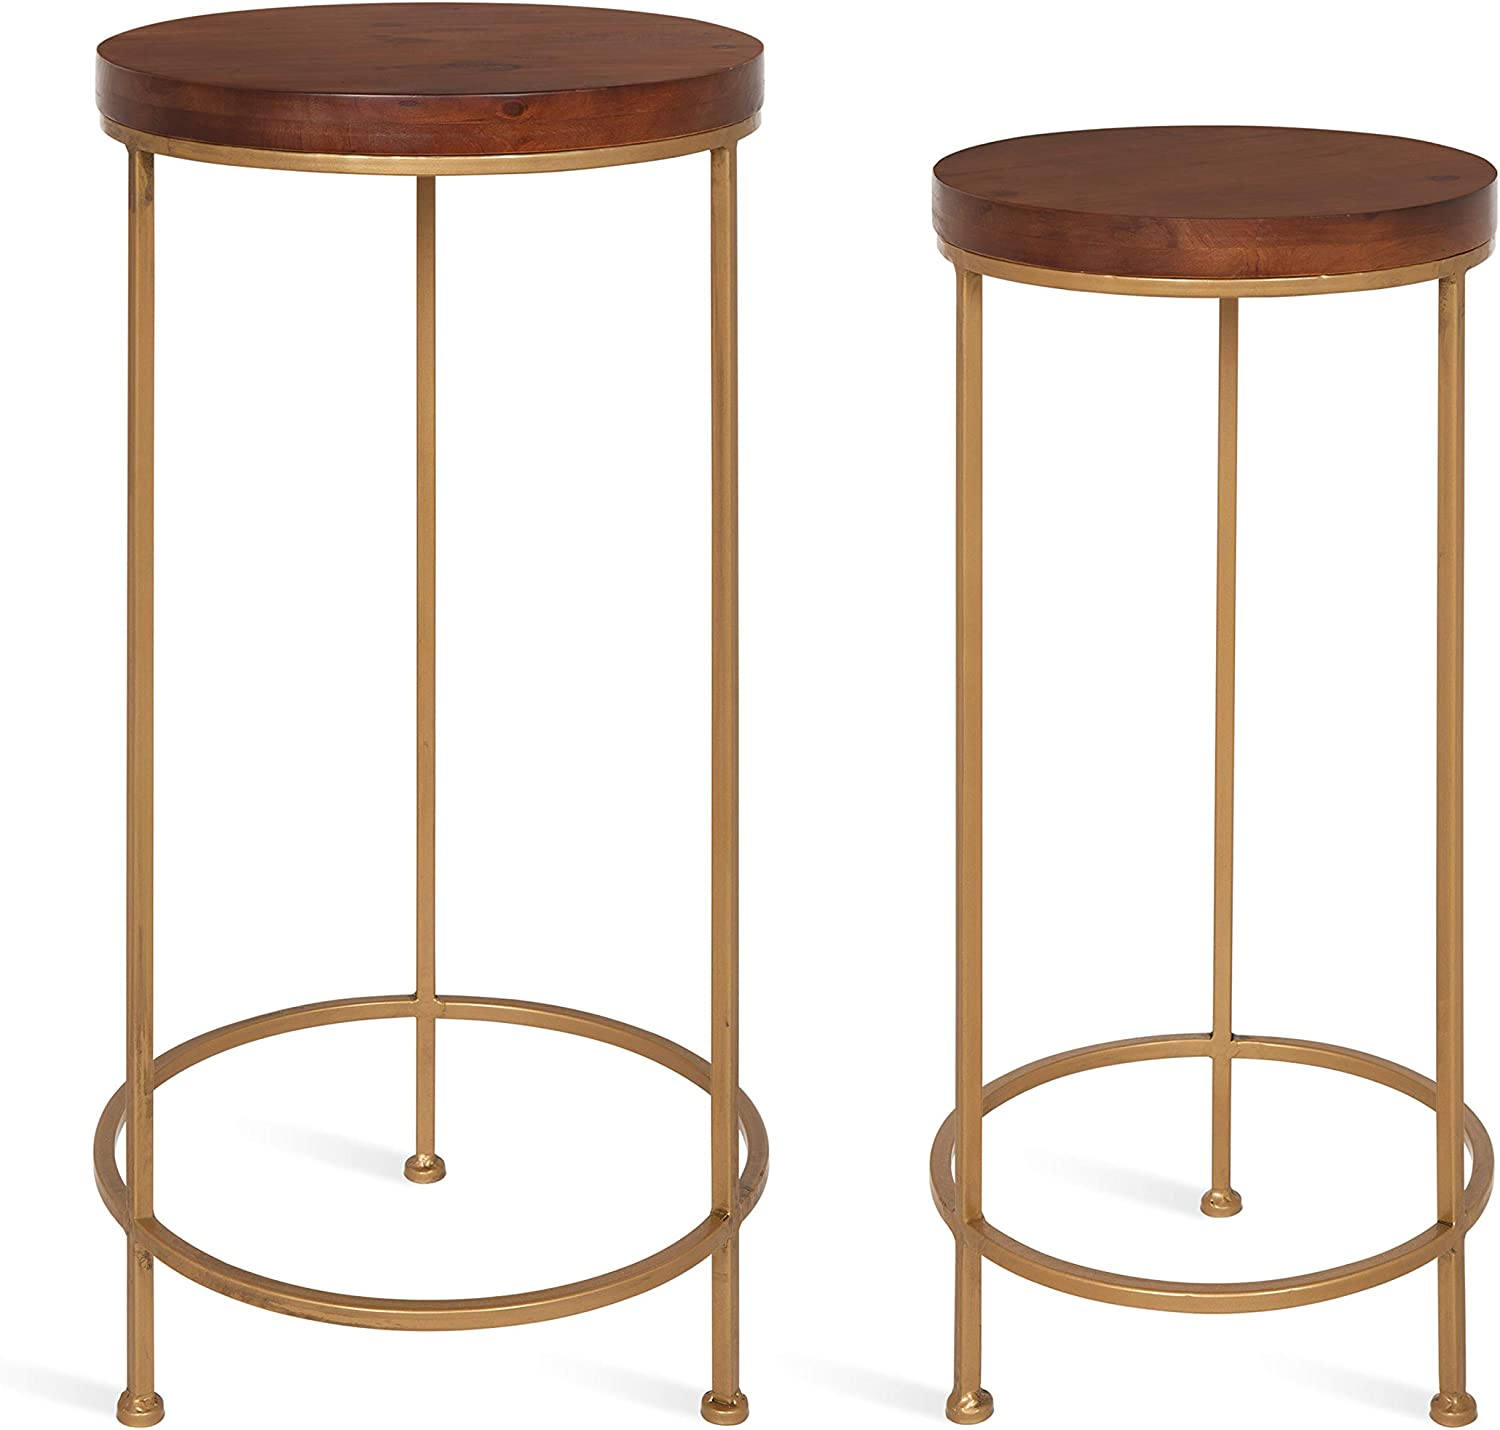 Kate and Laurel Espada Metal and Wood Nesting Tables 2 Piece Set, Walnut Top with Gold Base: Kitchen & Dining